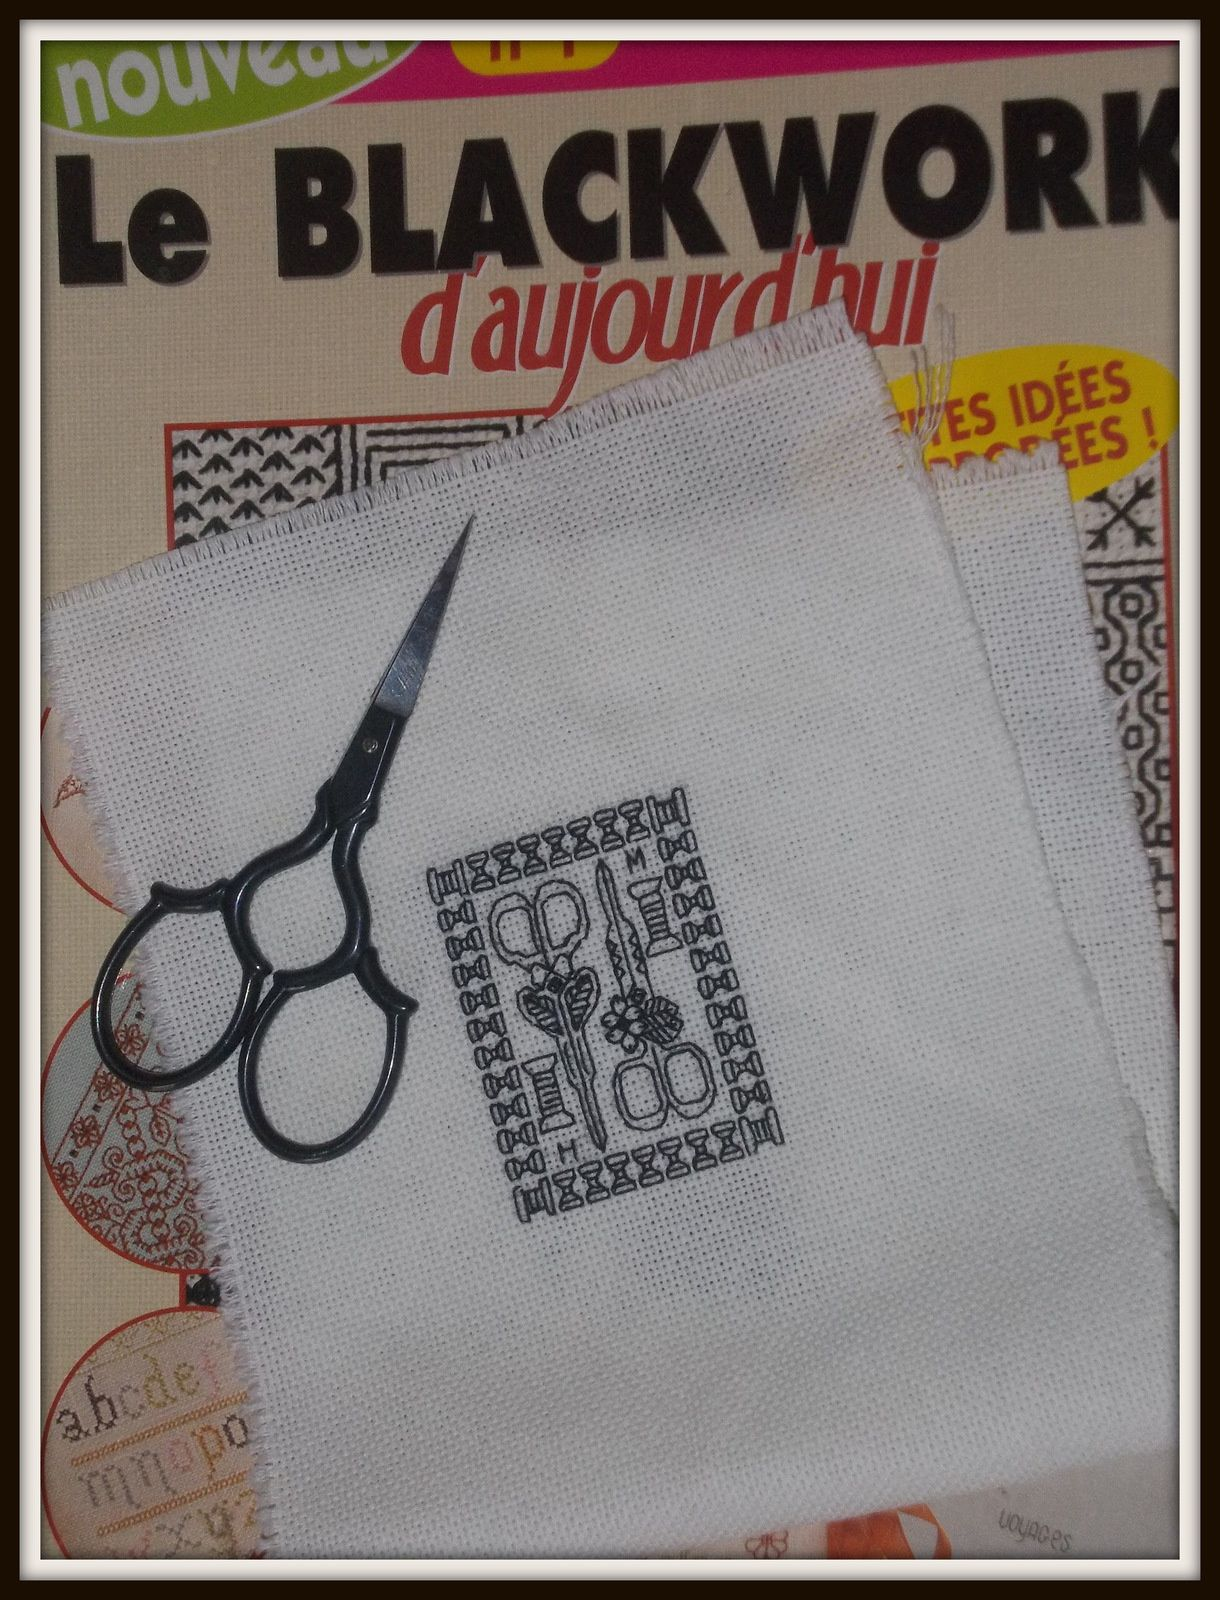 Un peu de Blackwork...